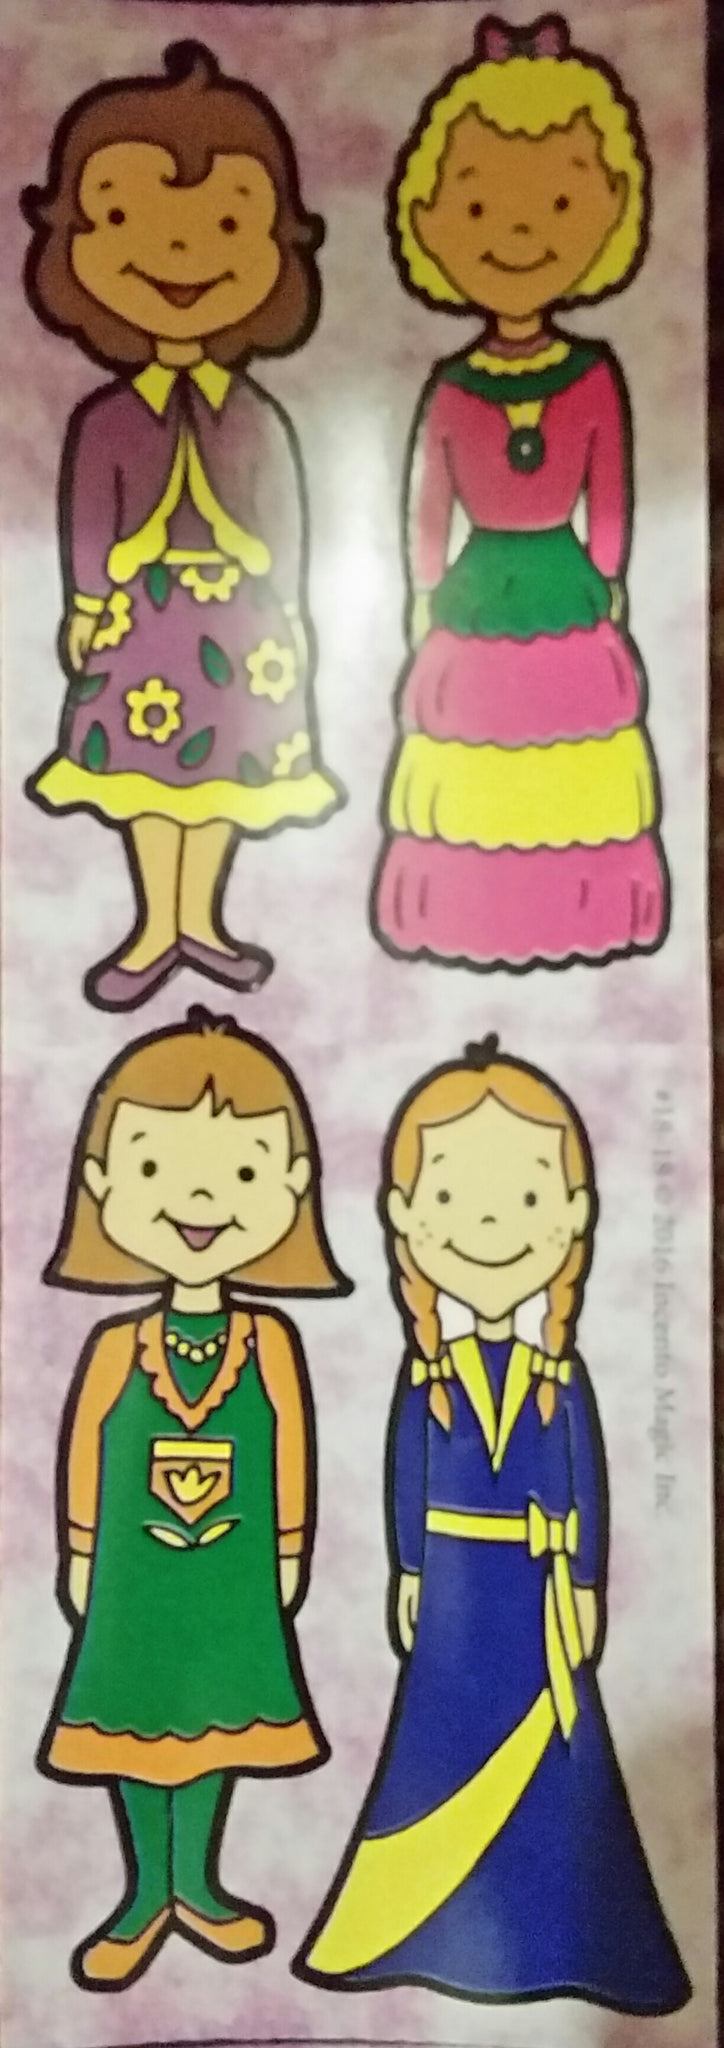 #18-18 - Girl Die Cut Stickers 2